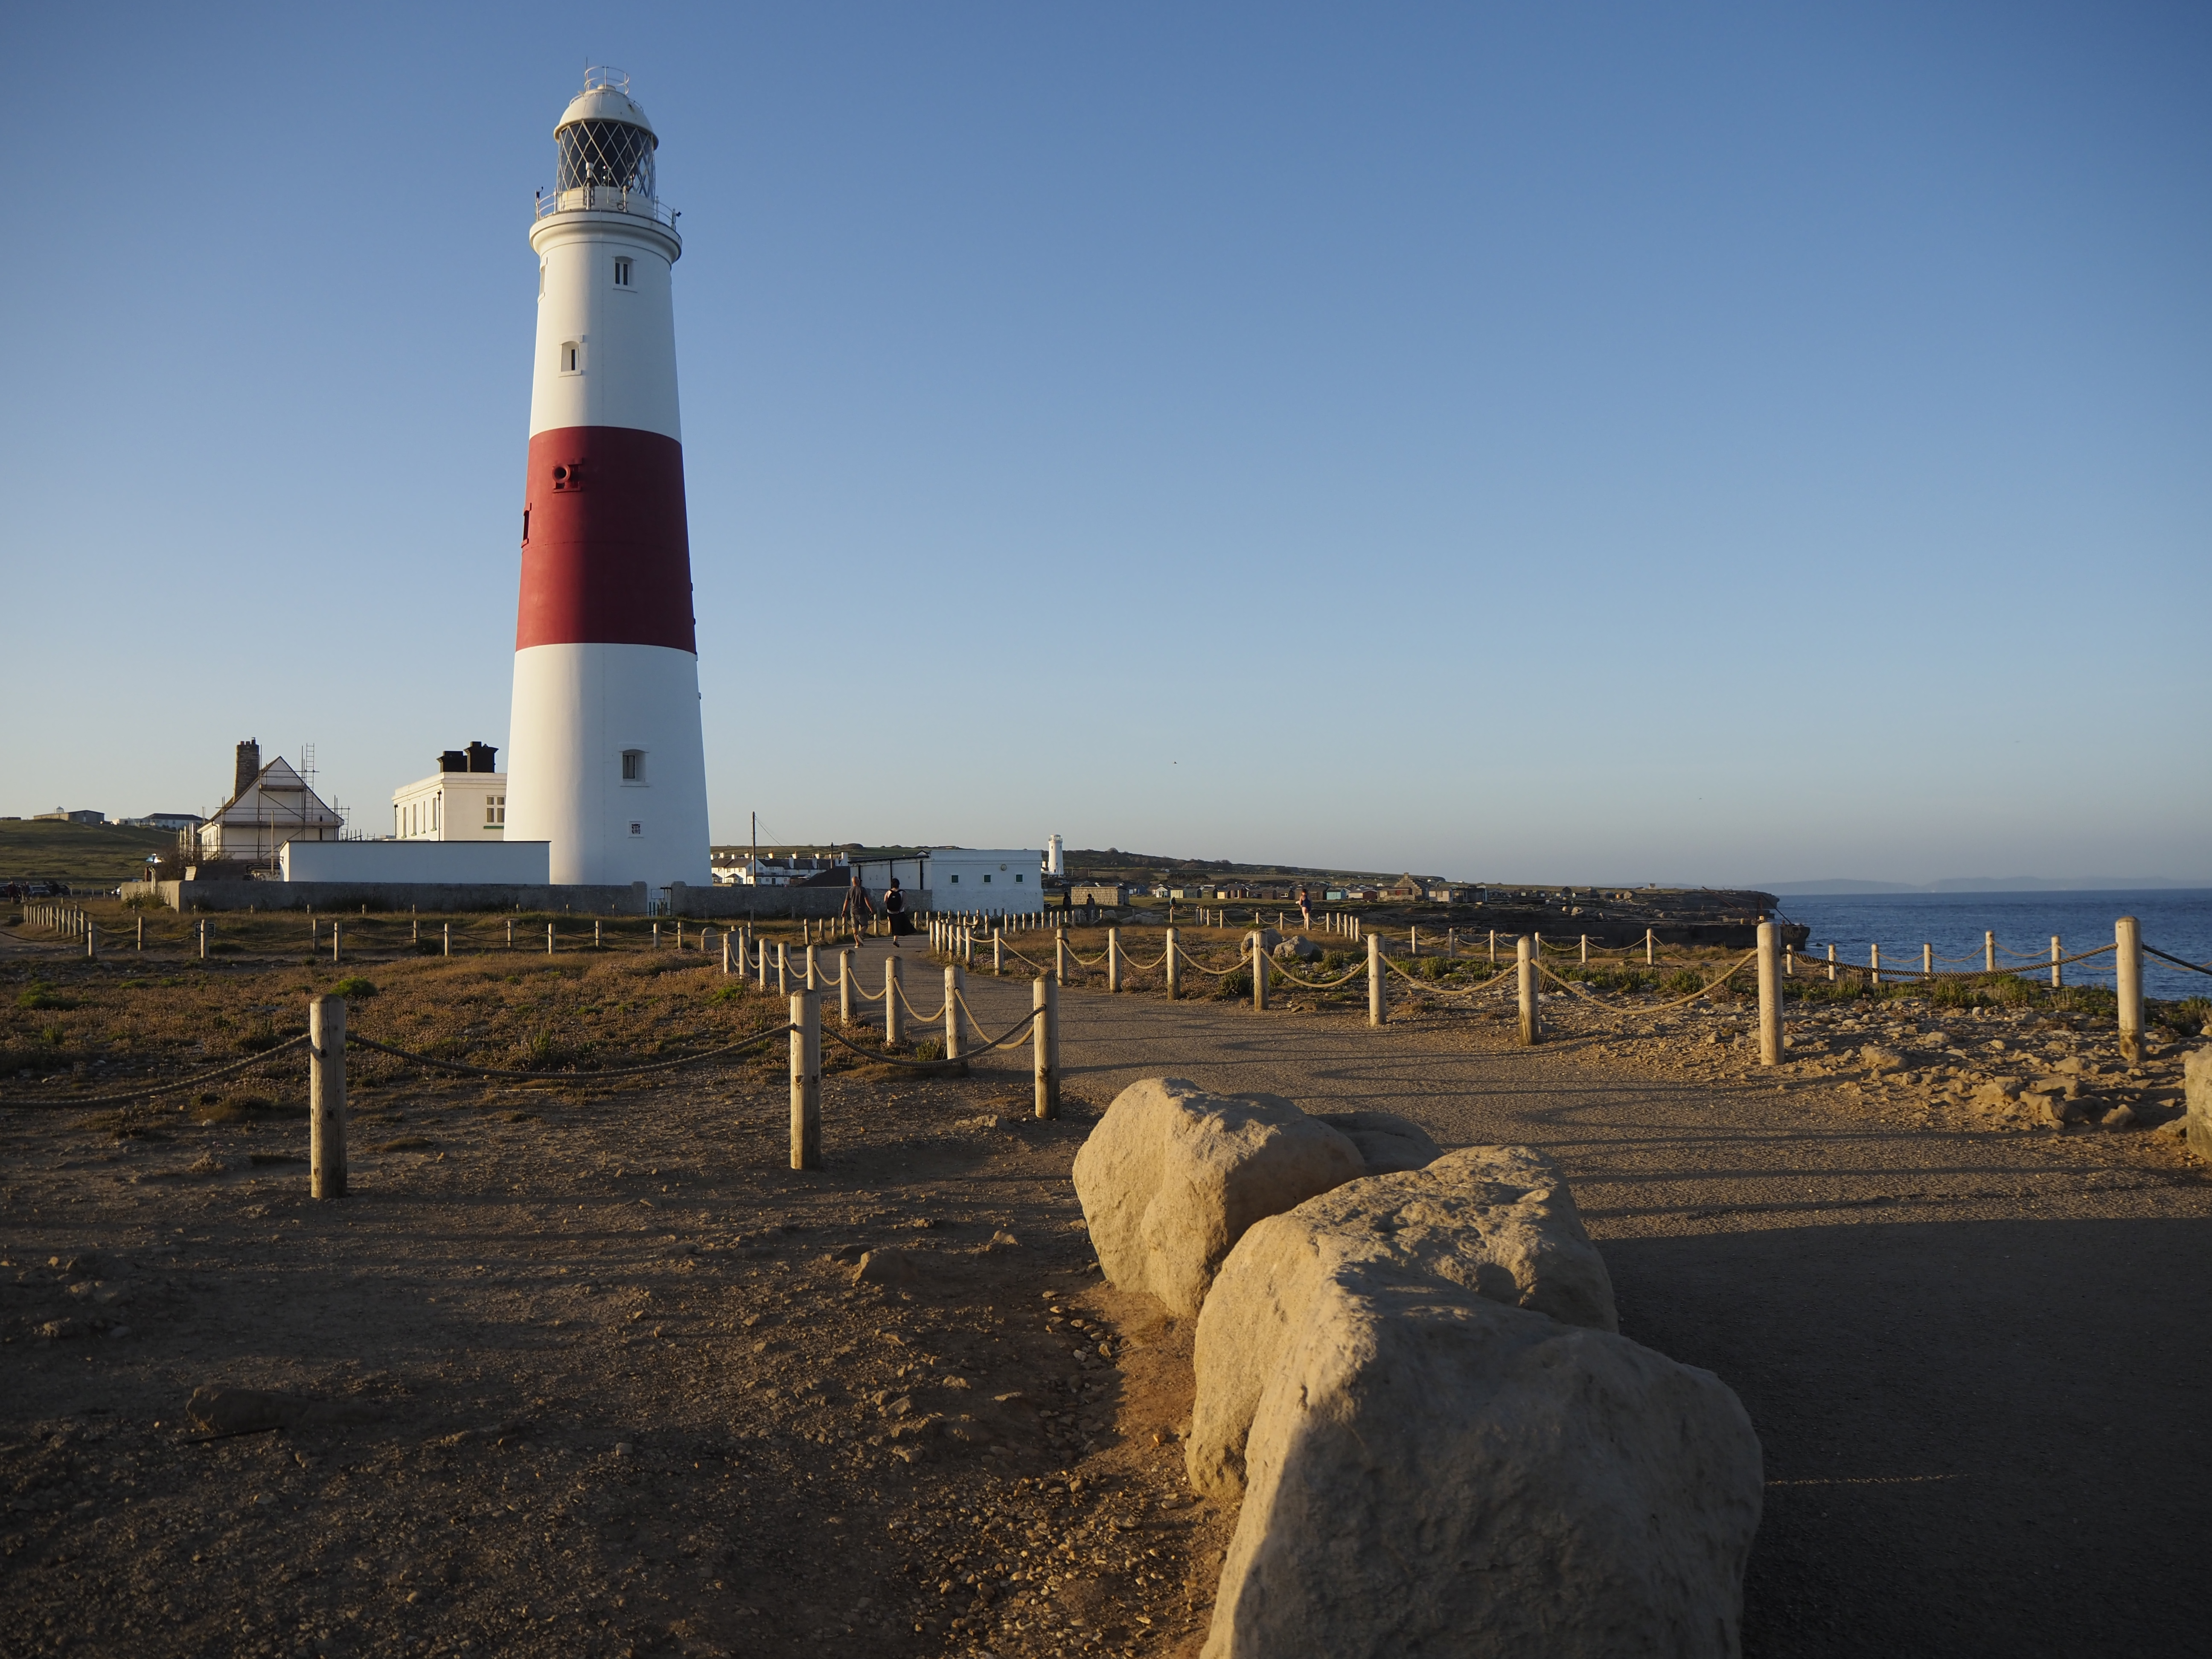 Lighthouse photographed using the Olympus E-P7